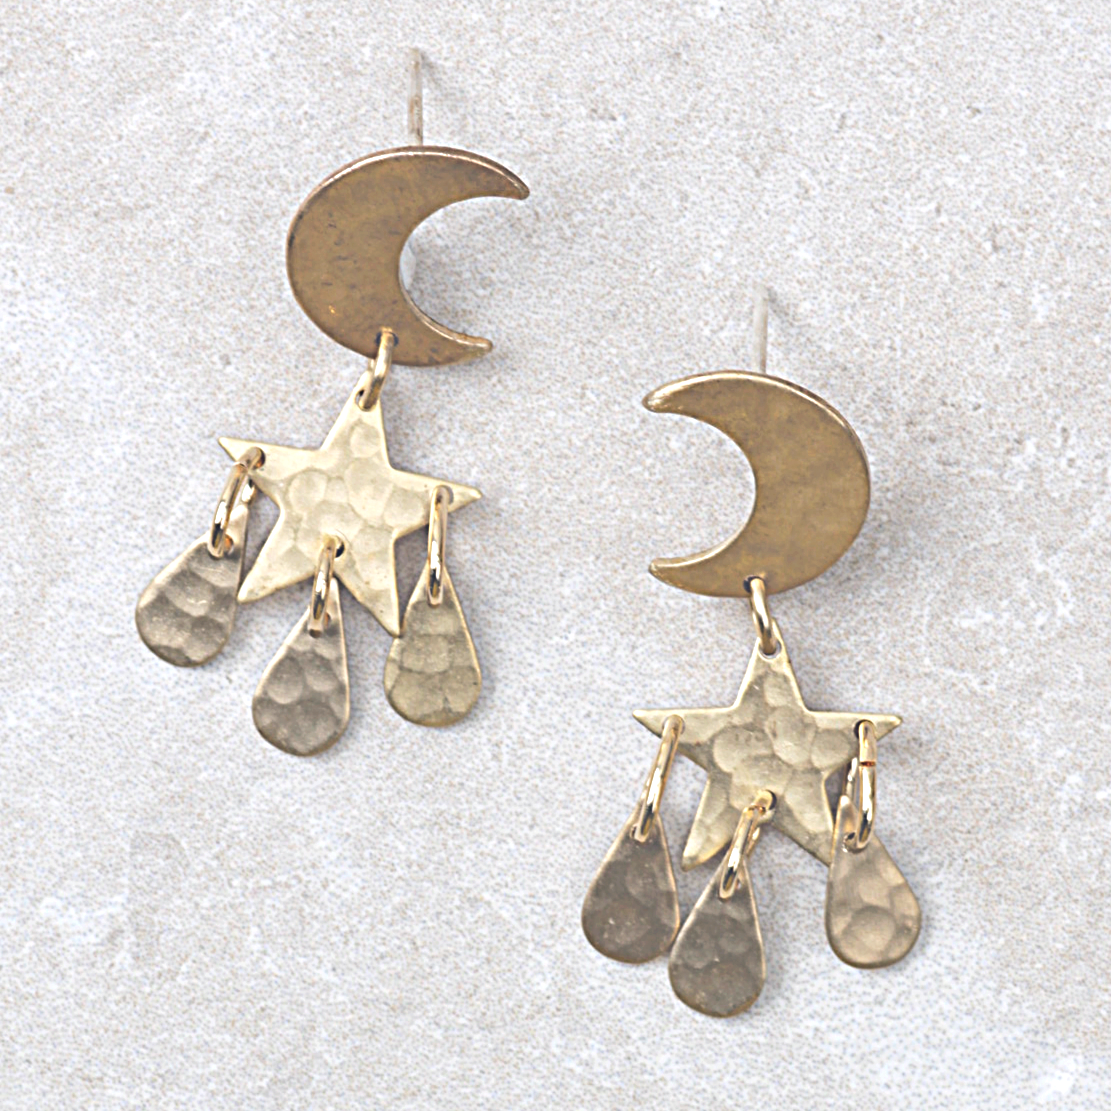 Aquarius Earrings - Coco and Duckie